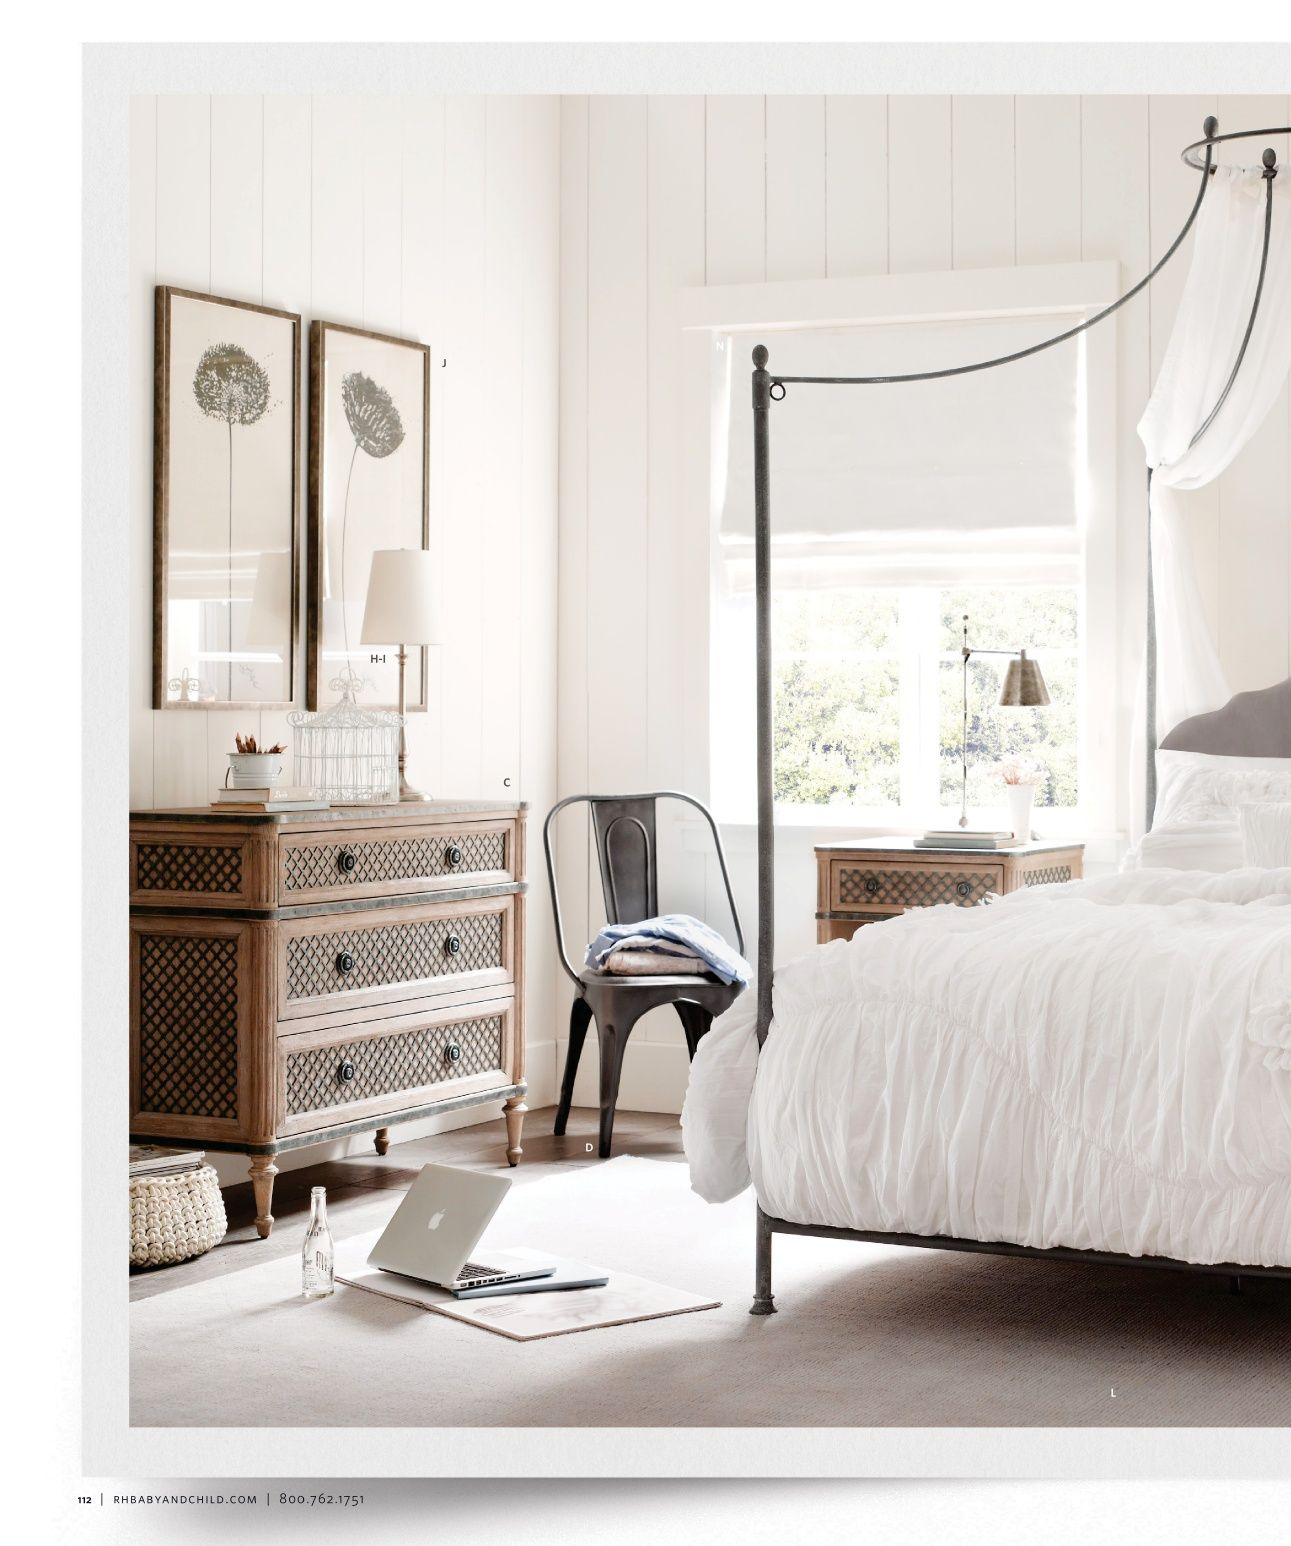 2012 Fall Catalog Restoration Hardware Master bedroom